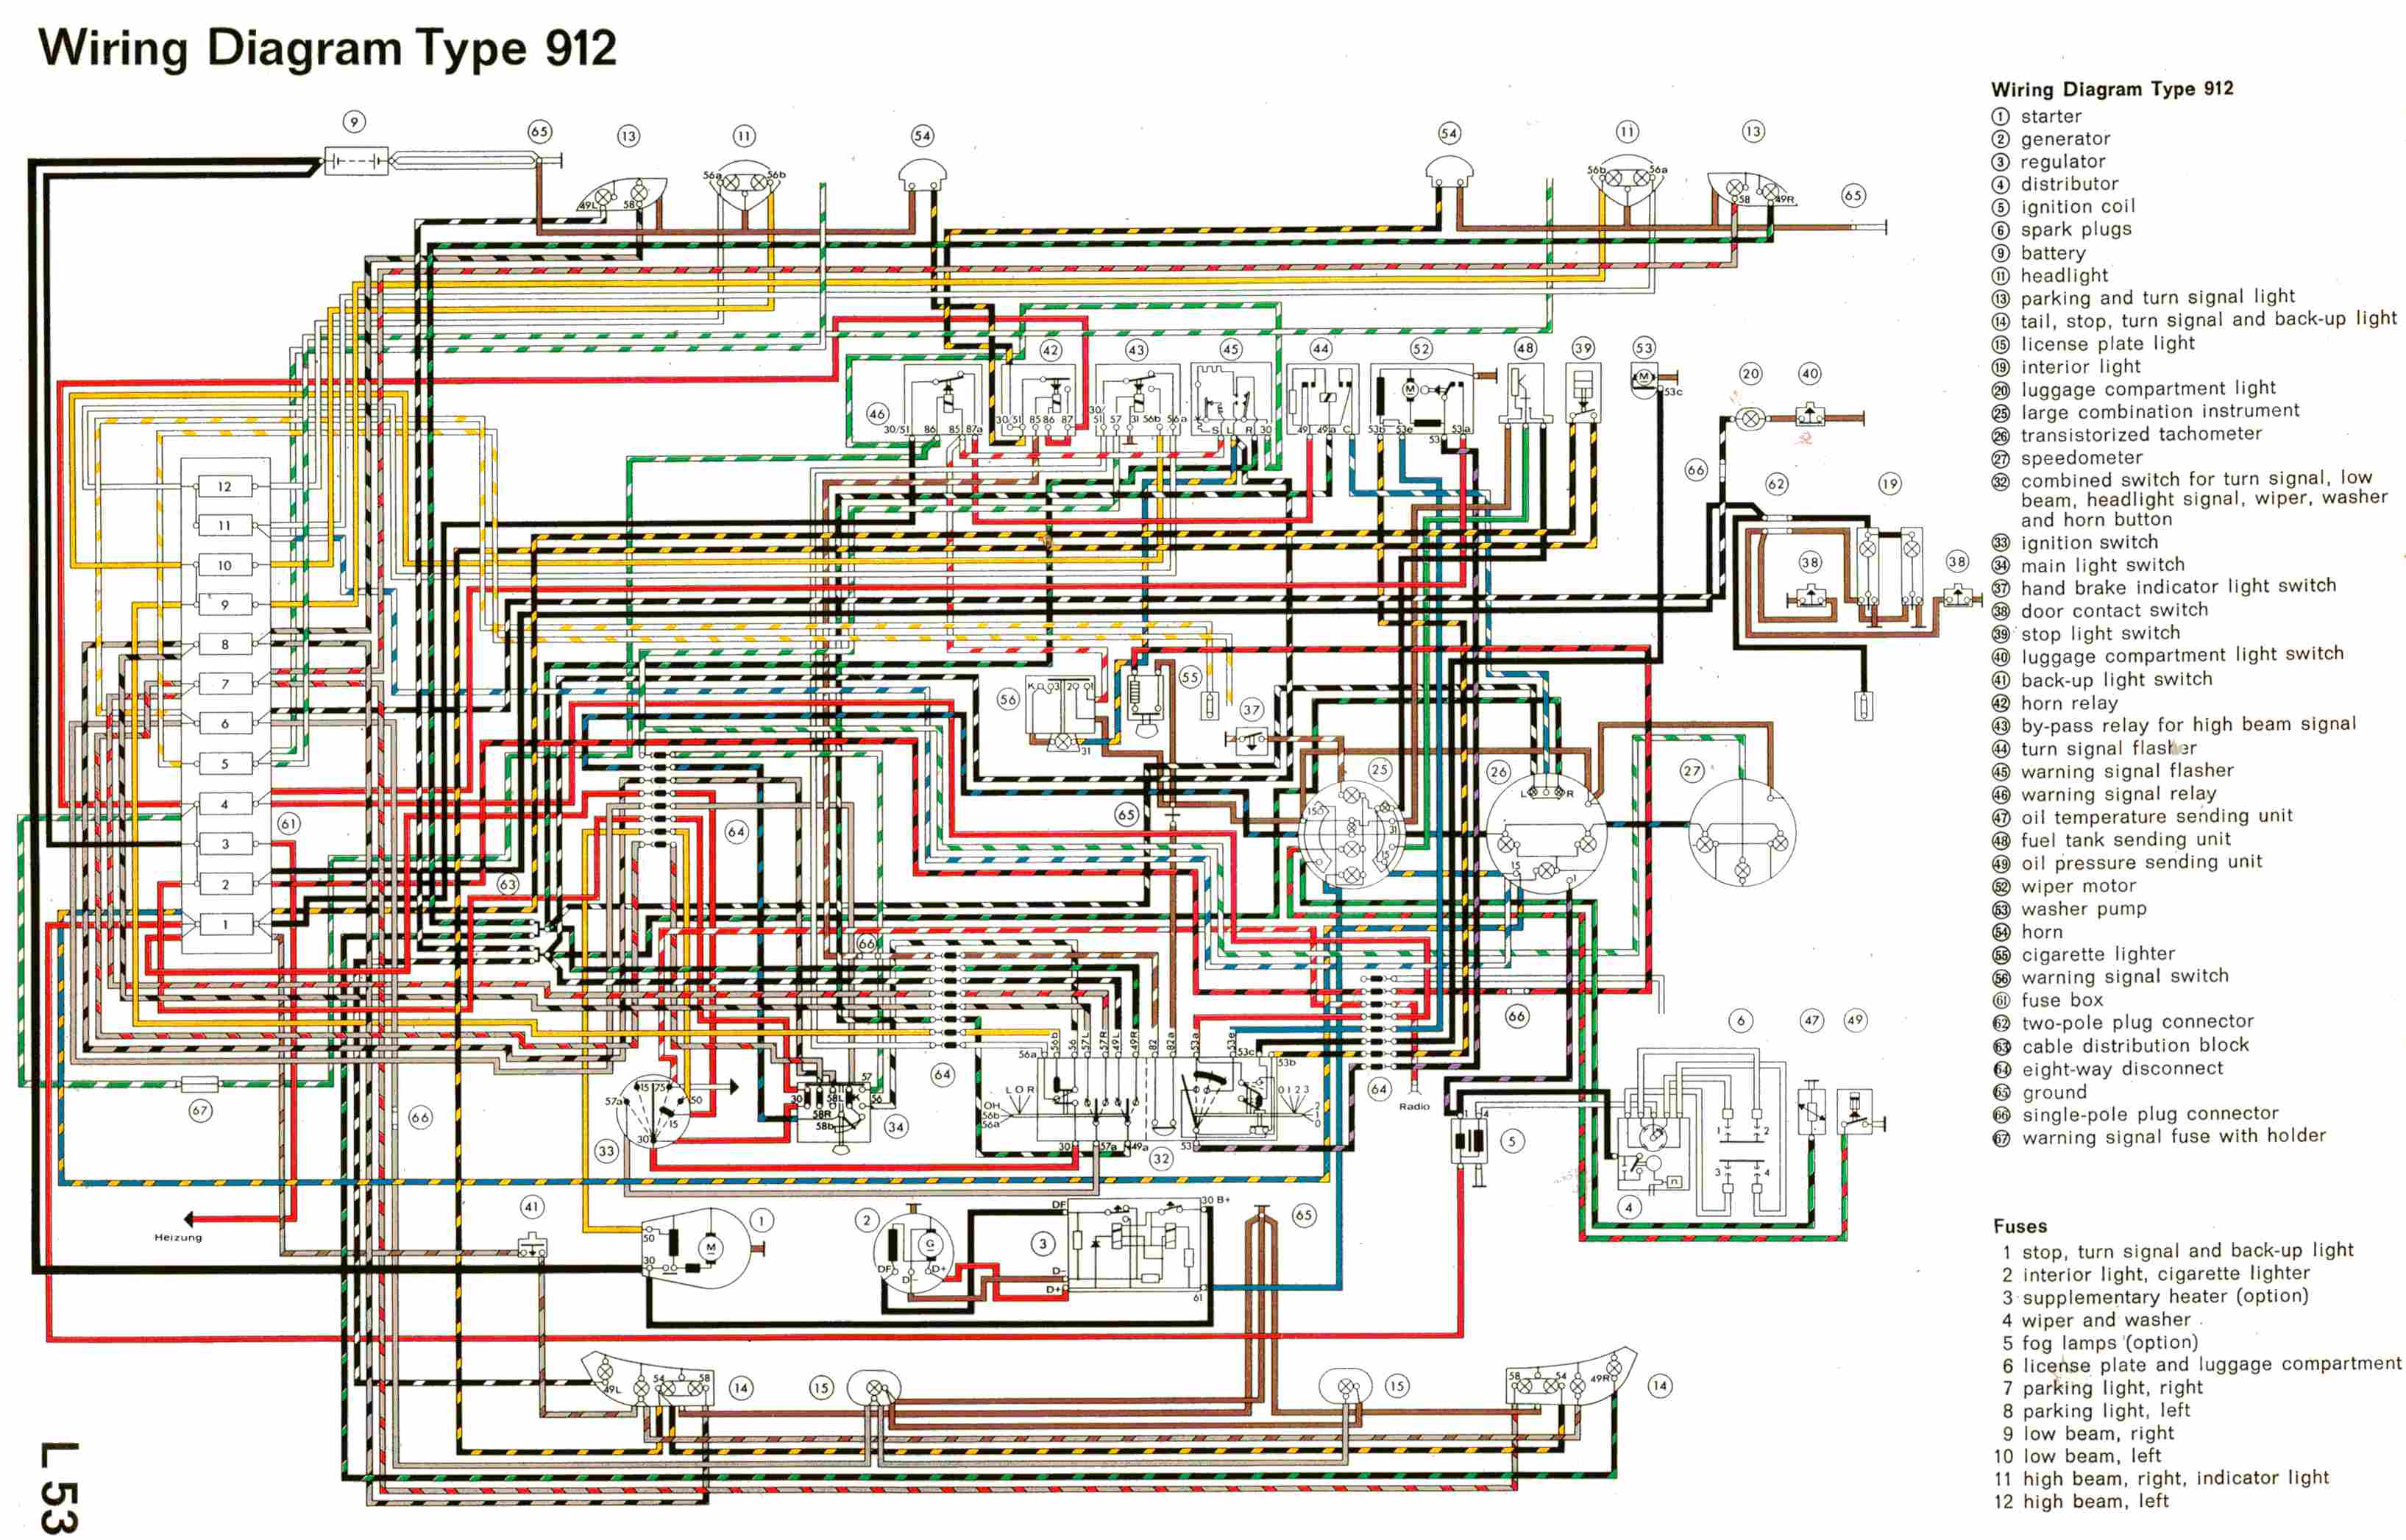 complete electrical wiring diagram of porsche type 912?resized665%2C4266ssld1 1981 porsche 928 wiring diagram efcaviation com 1980 porsche 928 wiring diagram at soozxer.org